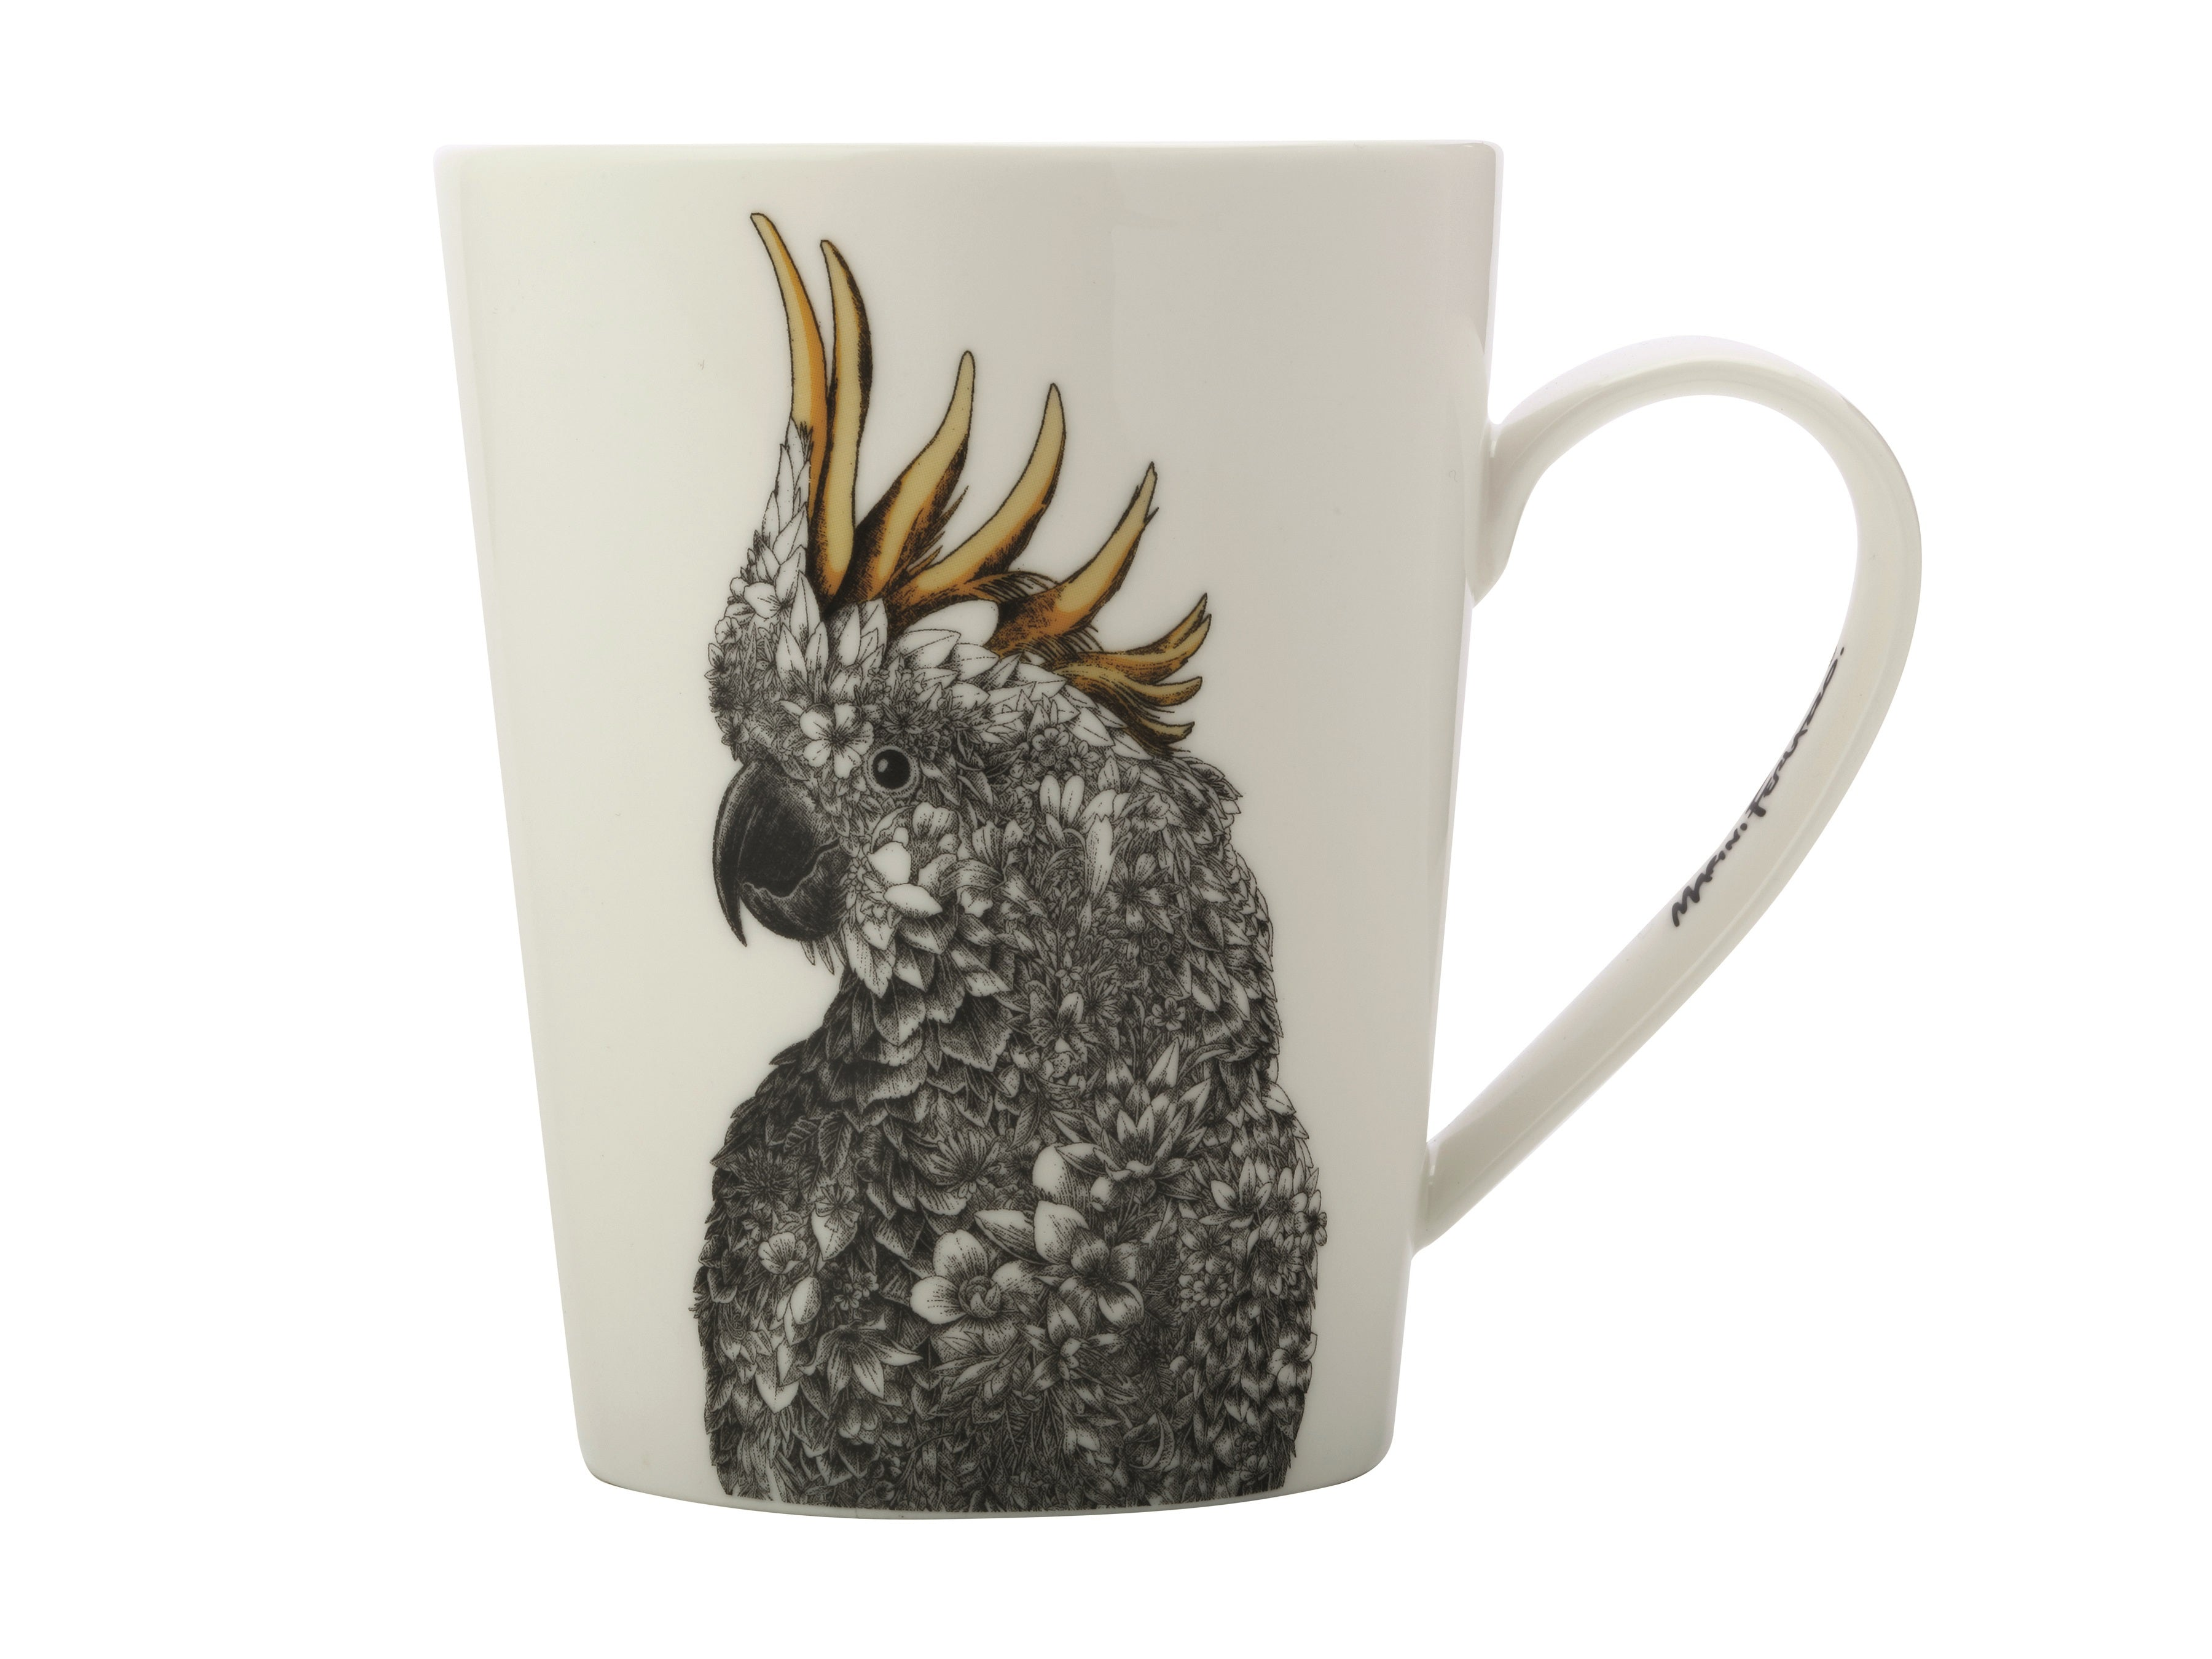 MW Marini Ferlazzo Birds Cockatoo Mug, Plate and Tea Towel Set